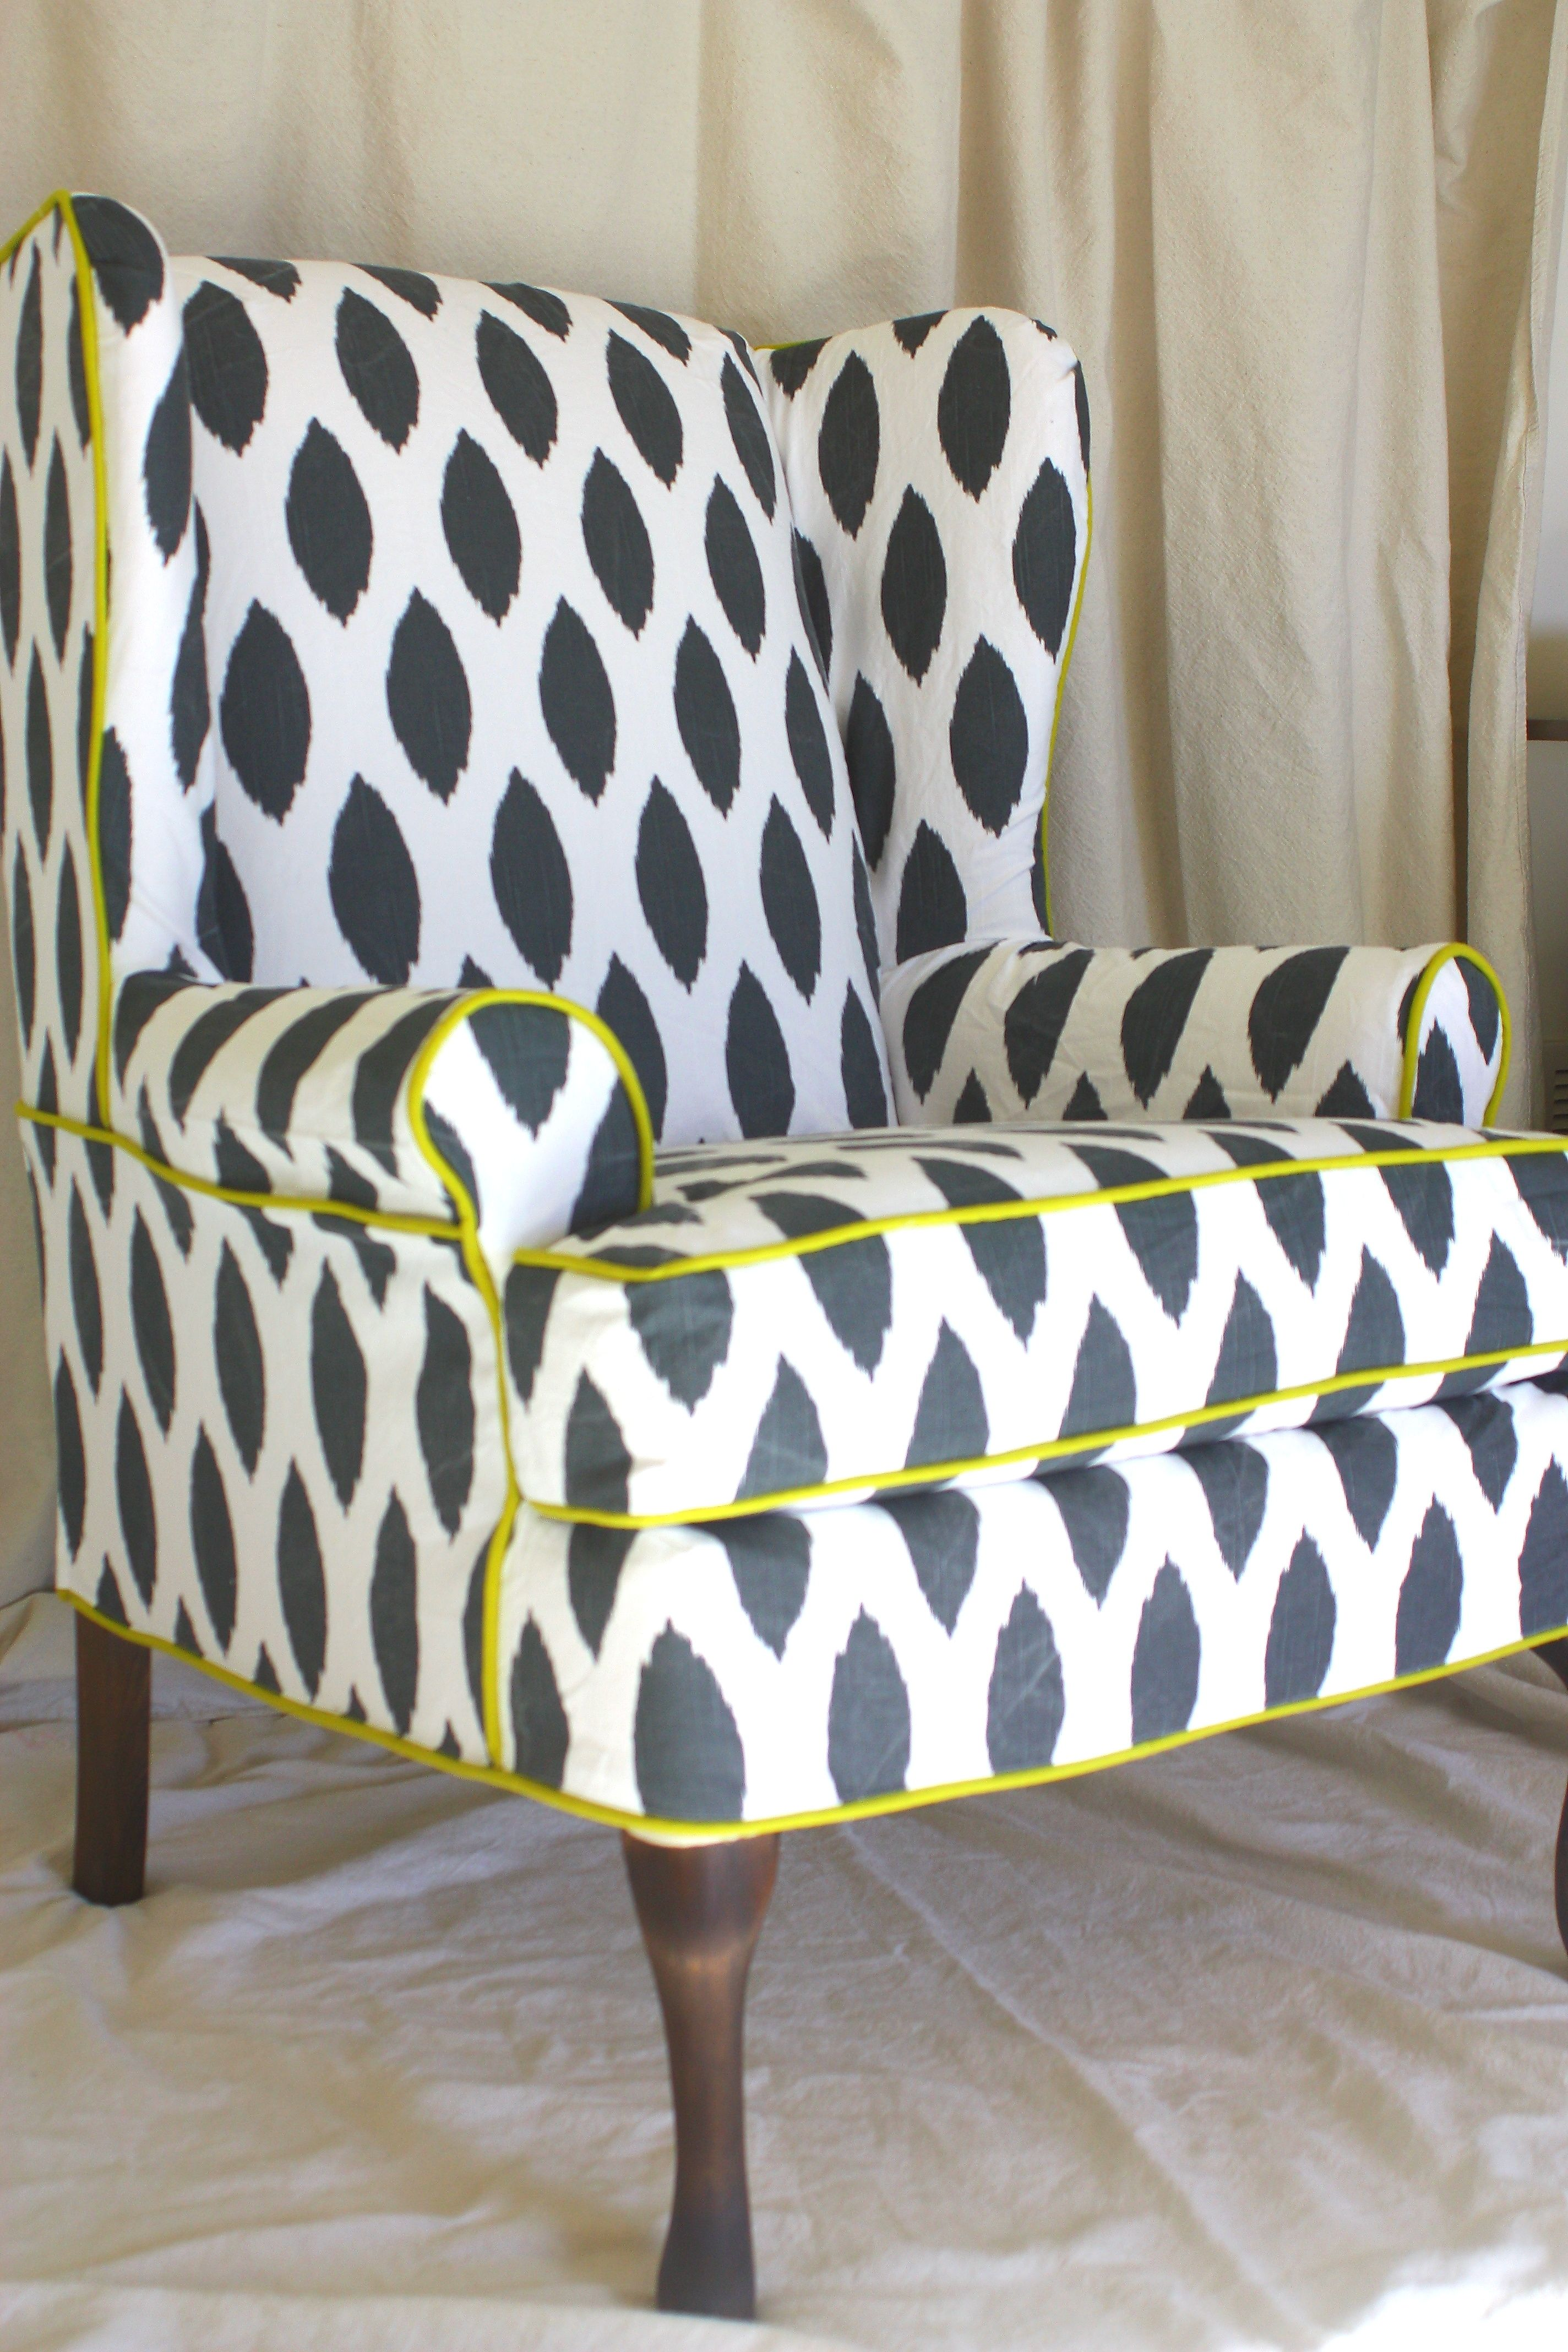 Ordinaire Yellow Chevron Chair Cover